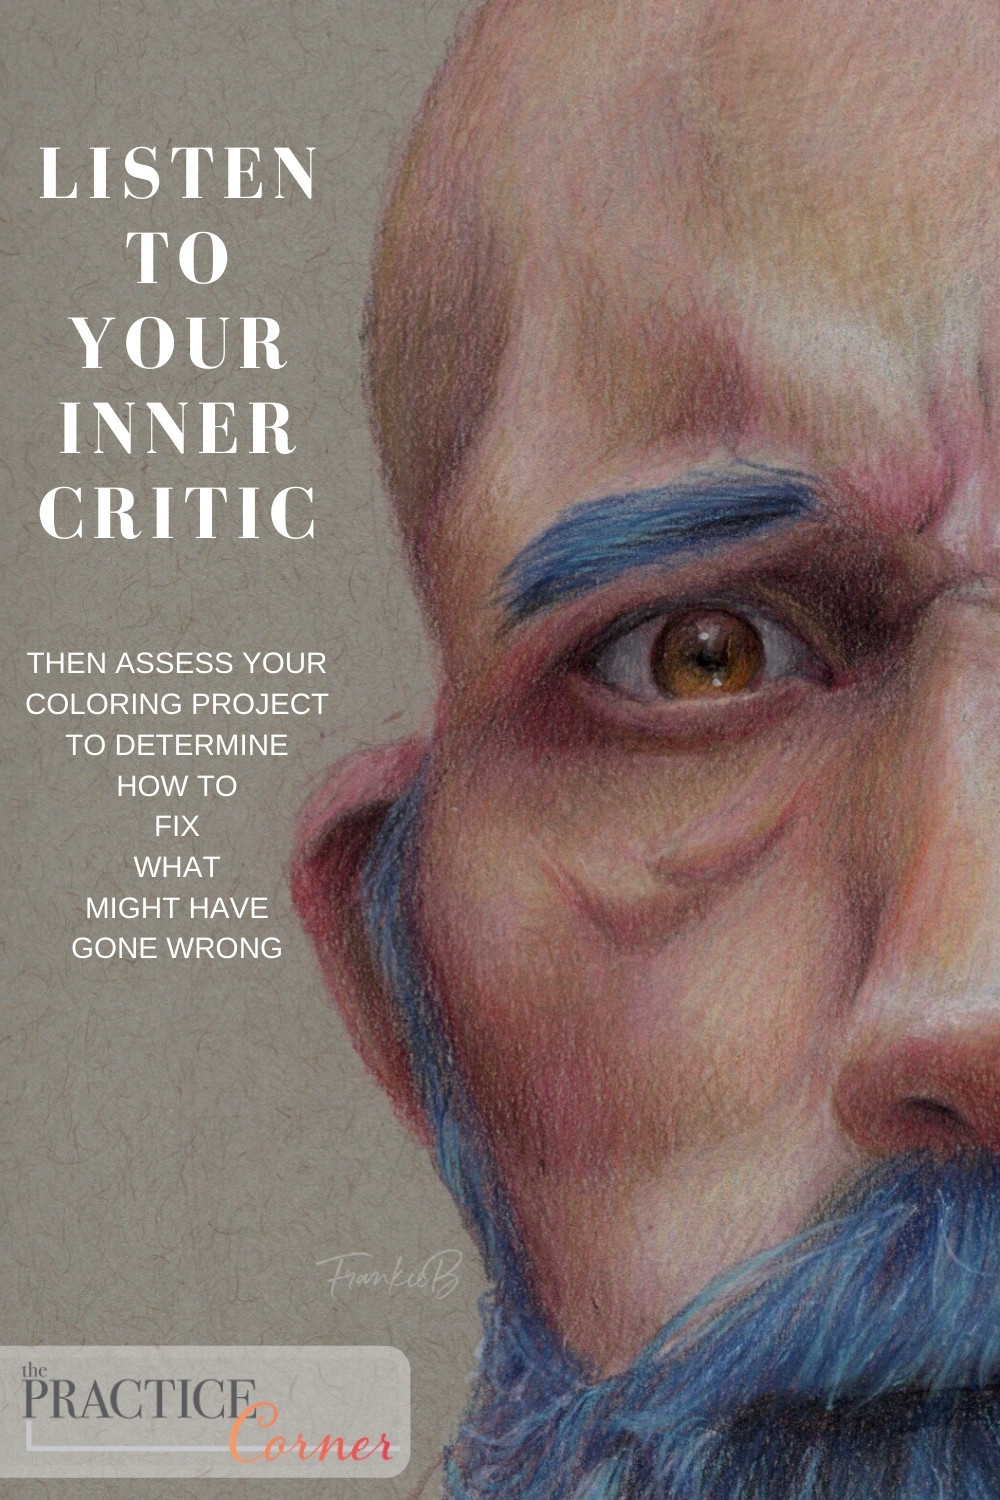 Let your inner critic help asses your coloring project so you can make improvements. | The Practice Corner | #realisticcoloring #coloringtechniques #copicmarkerpractice #coloredpencilpractice